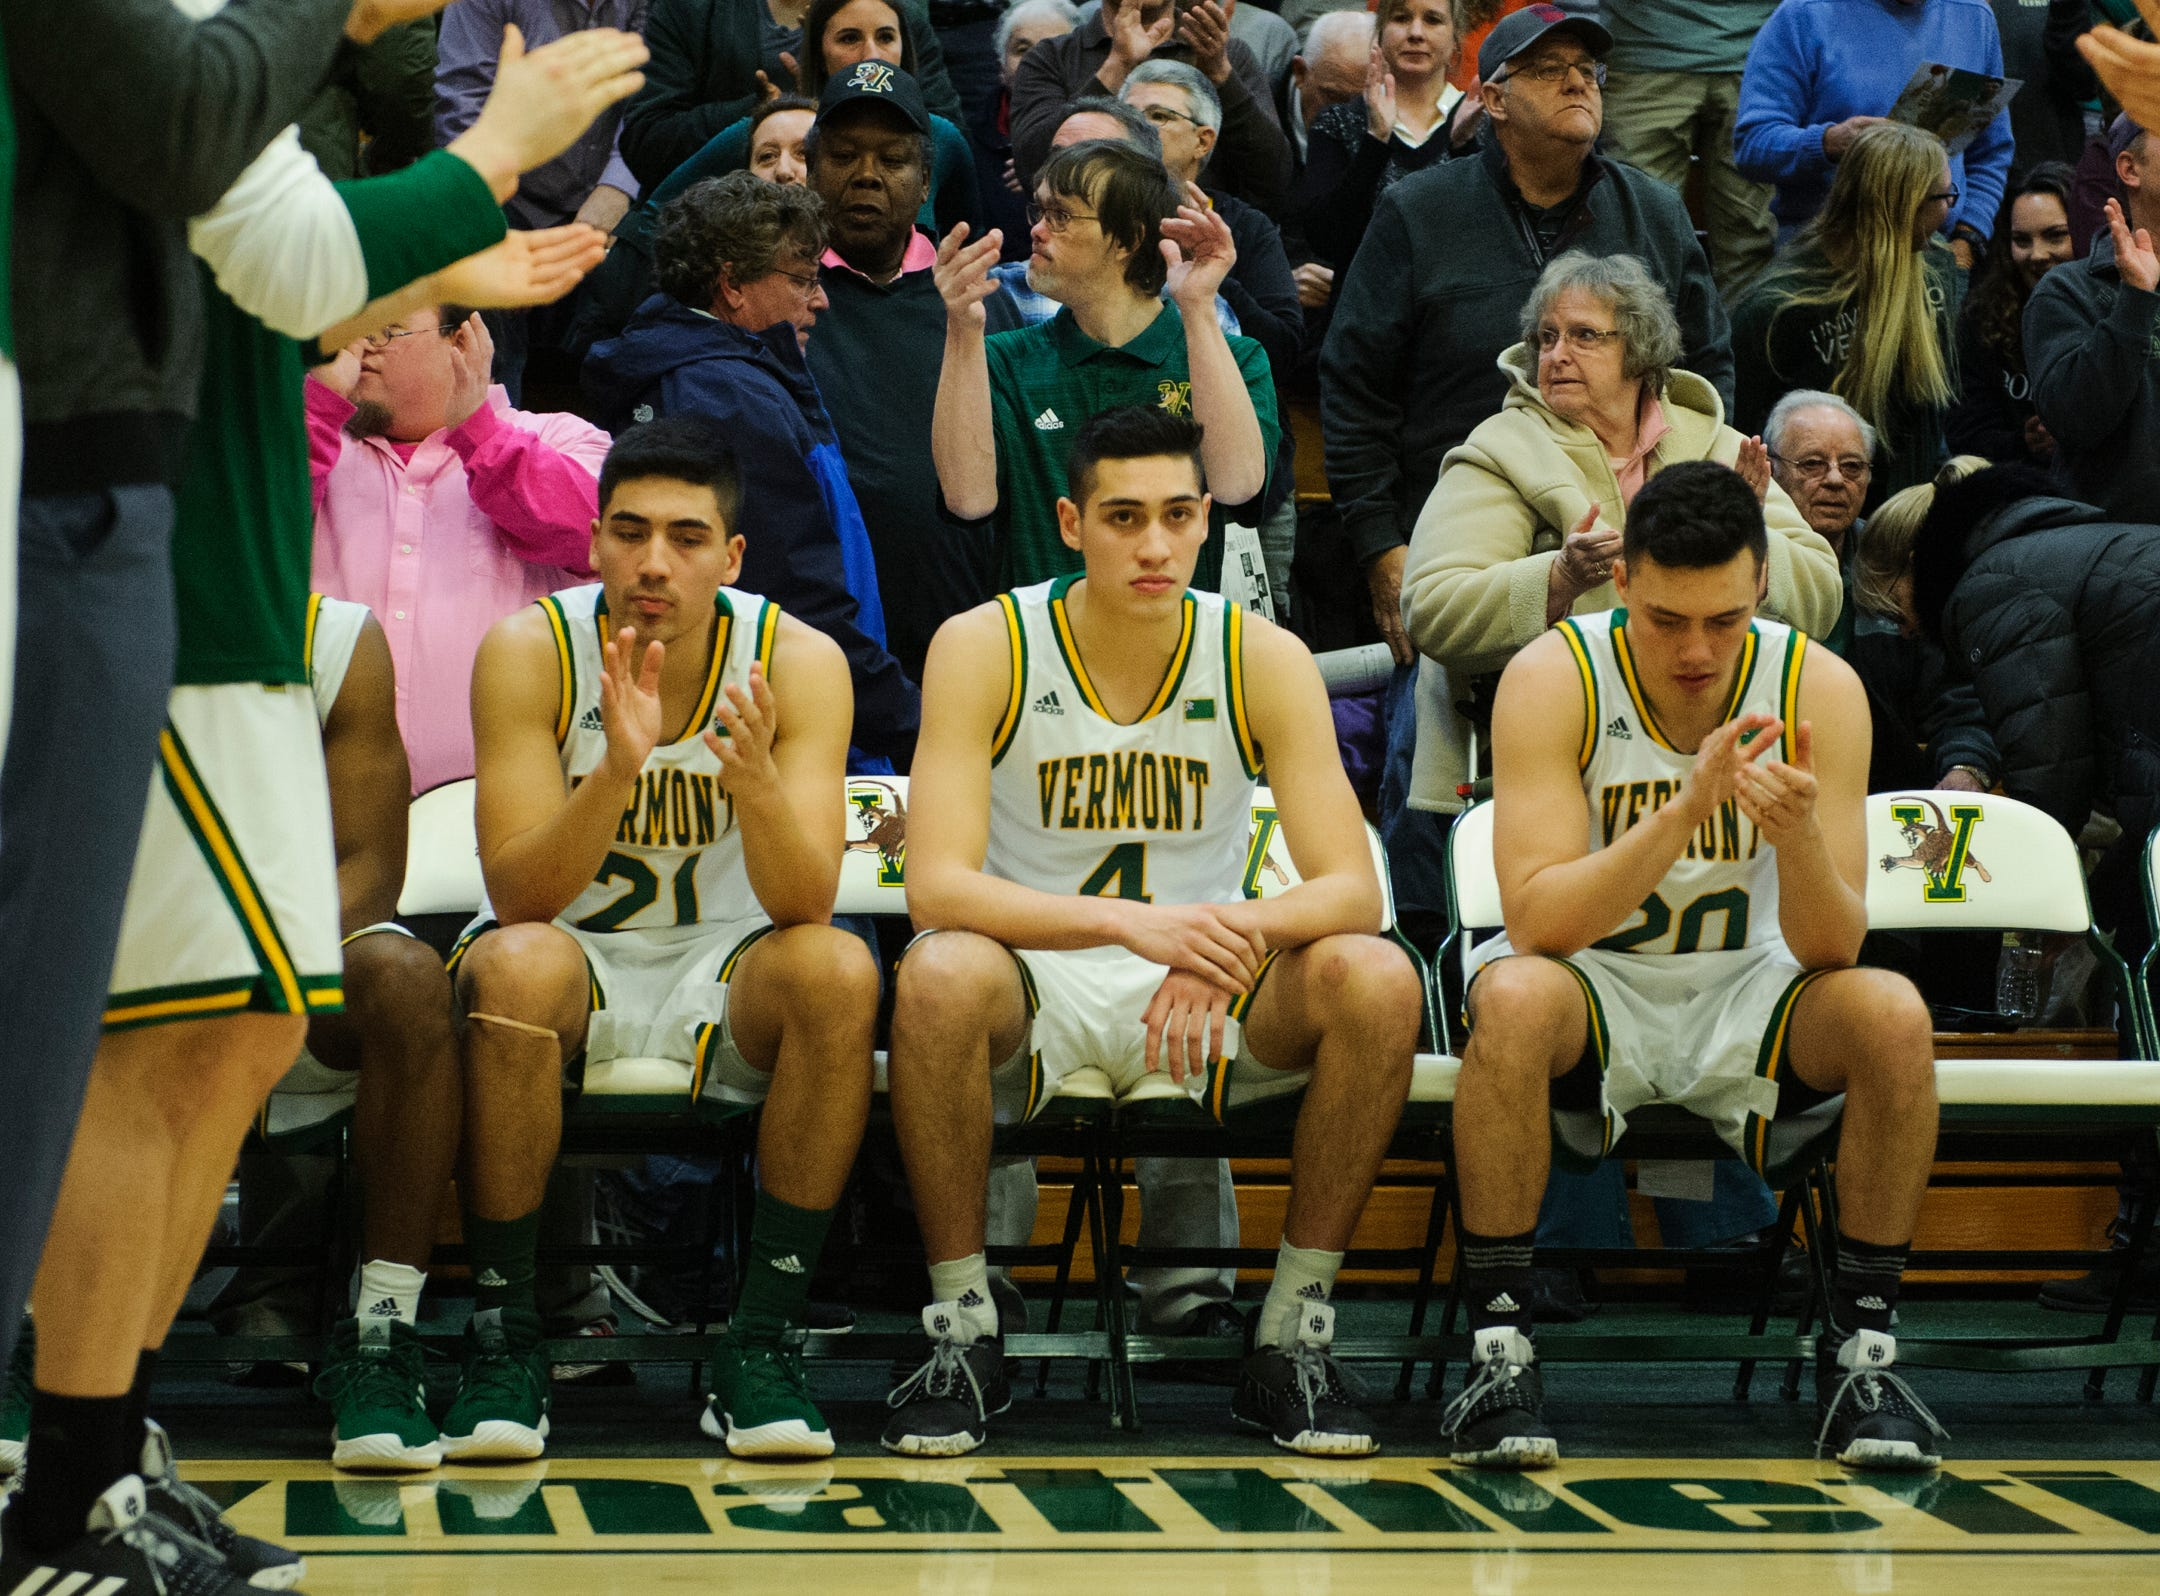 Vermont guard Everett Duncan (21), Vermont guard Robin Duncan (4) and Vermont guard Ernie Duncan (20) wait for the attracting line up announcements during the men's basketball game between the UMBC Retrievers and the Vermont Catamounts at Patrick Gym on Wednesday night January 23, 2019 in Burlington, Vermont. It only the second time in the history of college basketball that three brothers started in the same game.